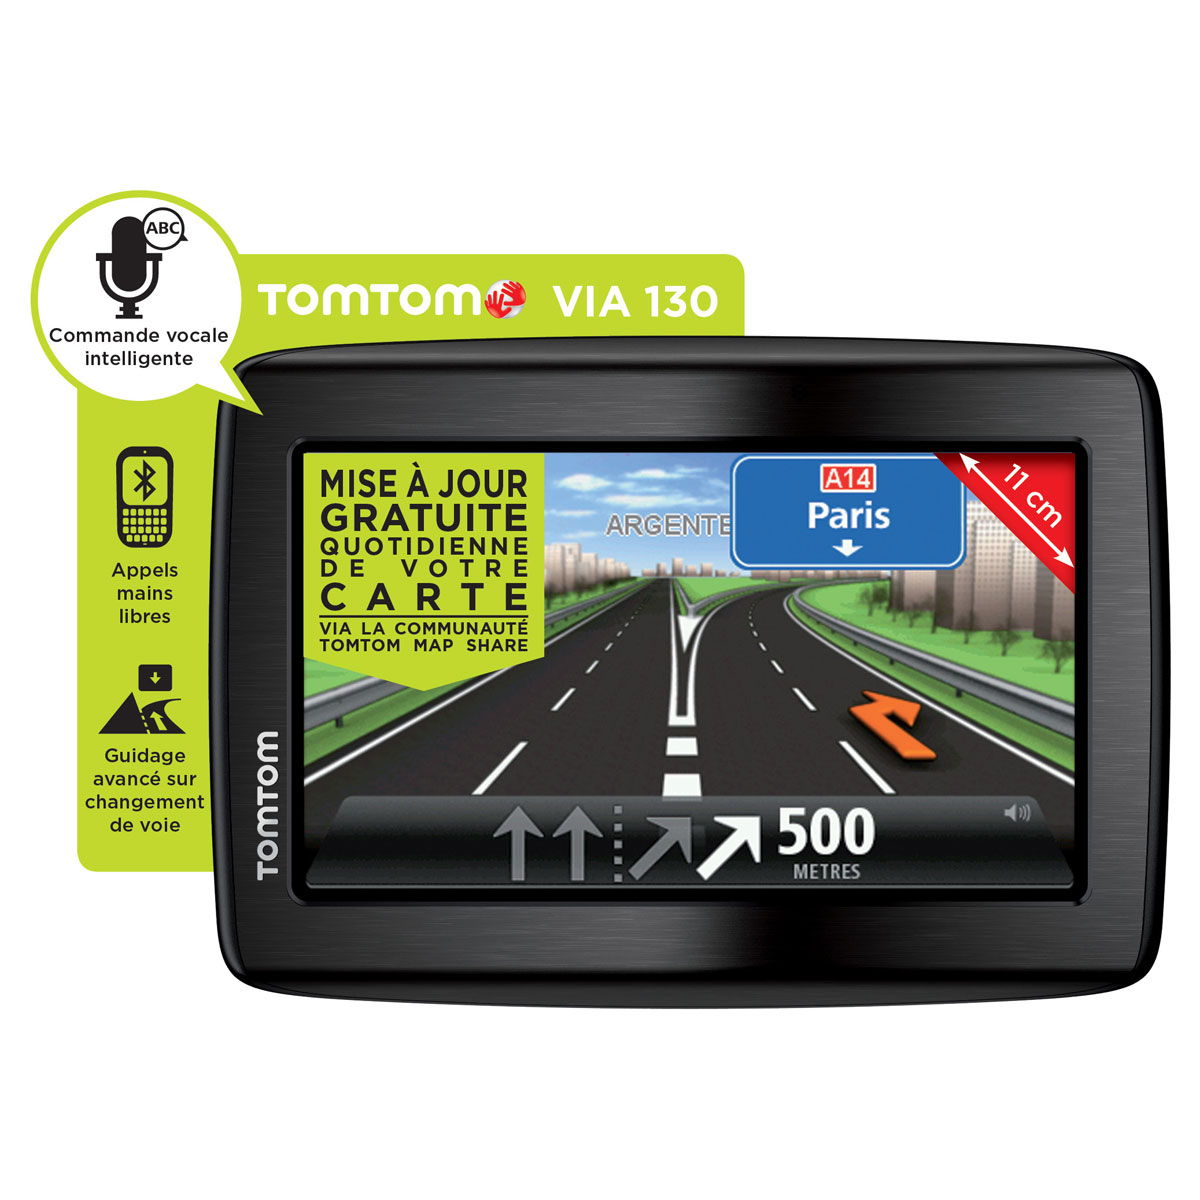 tomtom via 130 gps tomtom sur. Black Bedroom Furniture Sets. Home Design Ideas